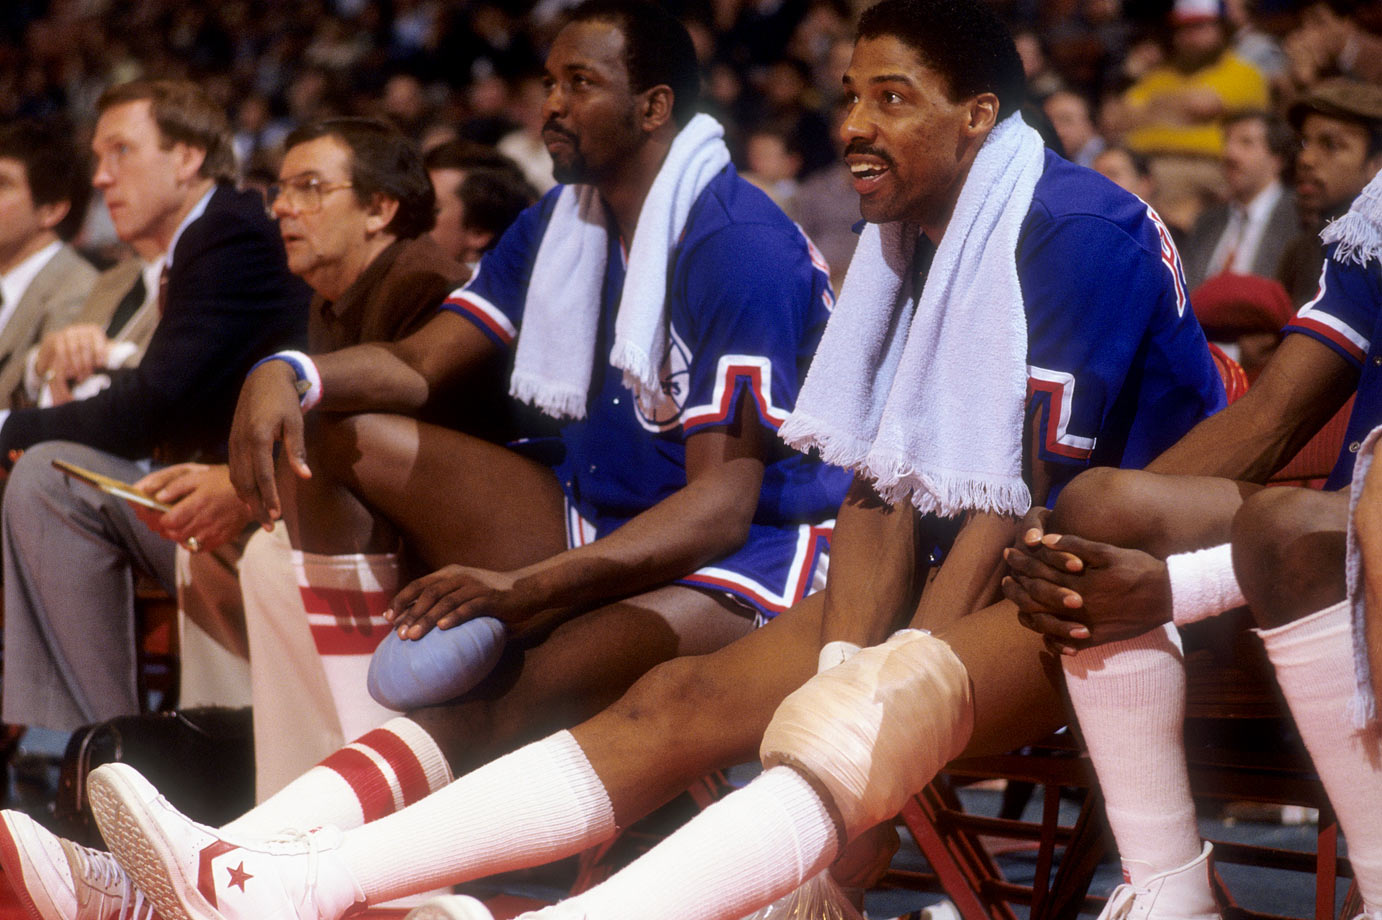 Dr. J and Moses Malone watch the action from the bench.